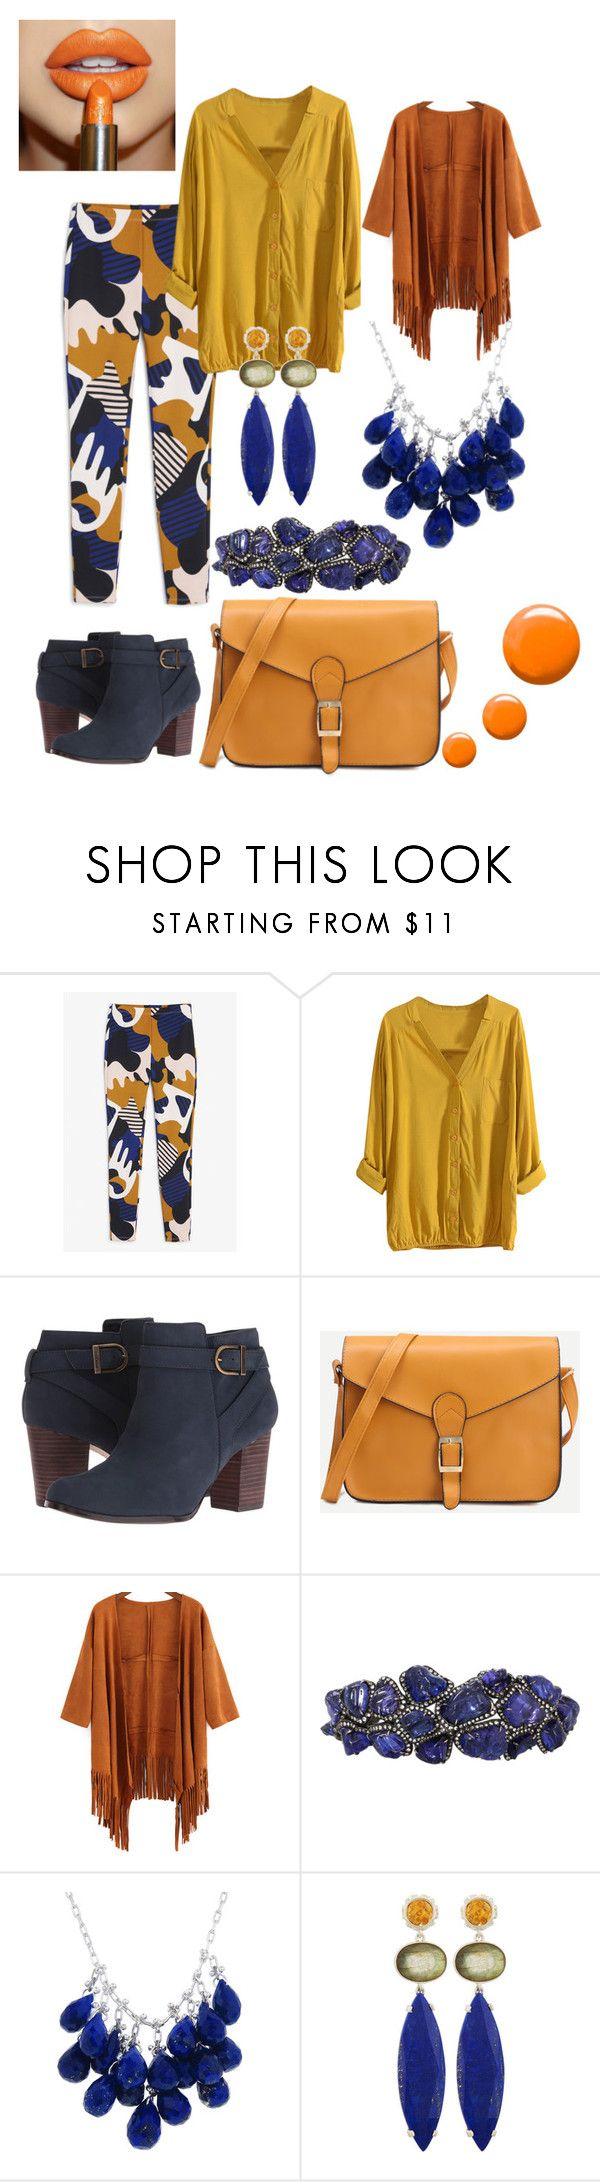 """""""autumn"""" by mcounce ❤ liked on Polyvore featuring Monki, Cole Haan, Arunashi, Ten Thousand Things, Stephen Dweck and Topshop"""